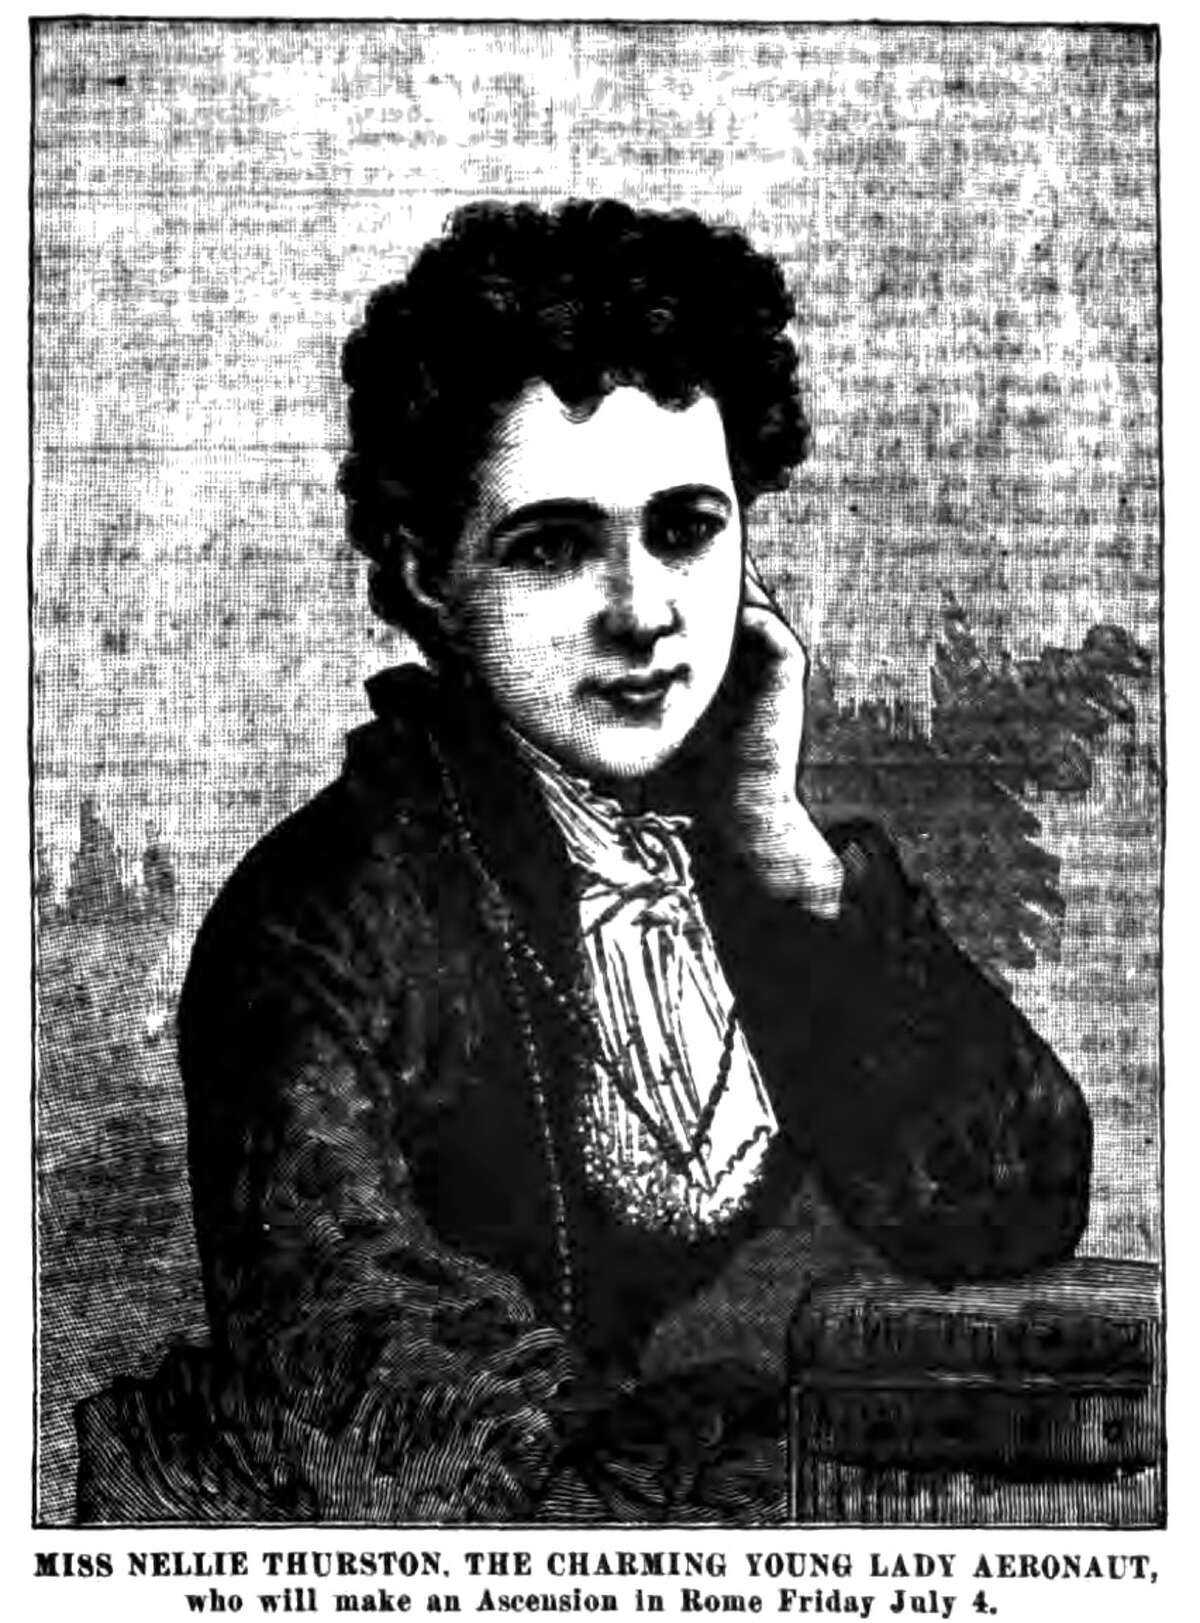 Nellie Thurston, shown in this archived newspaper clipping from the Lansingburgh Historical Society,was only 19 years old when she became the first U.S. woman to fly solo in a balloon in 1871.